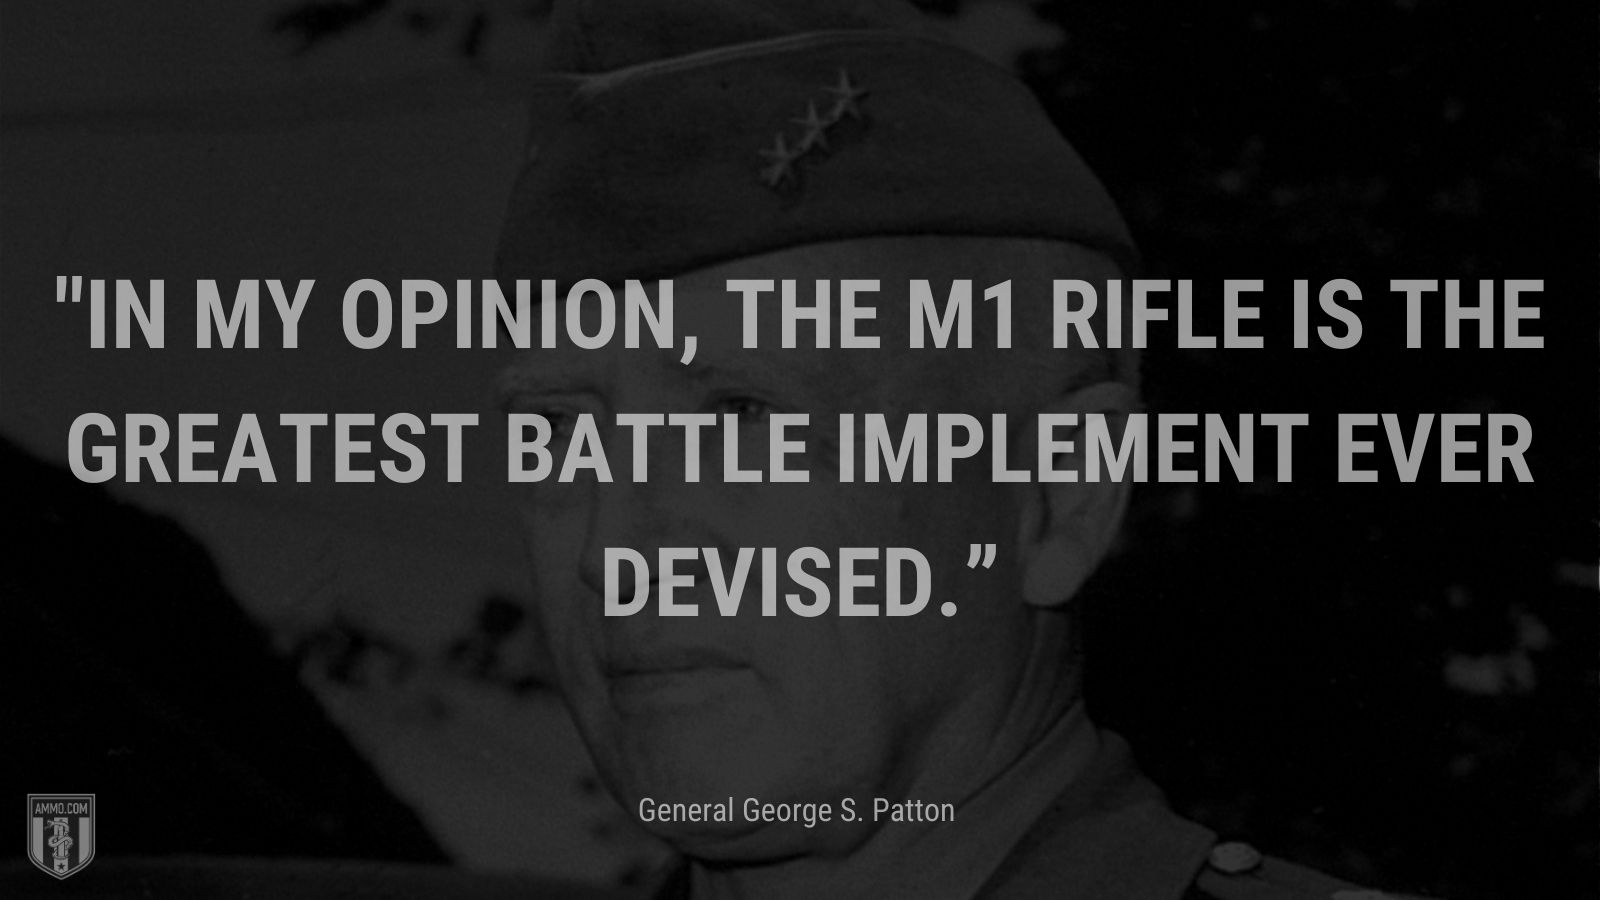 """""""In my opinion, the M1 rifle is the greatest battle implement ever devised."""" - General George S. Pattone"""